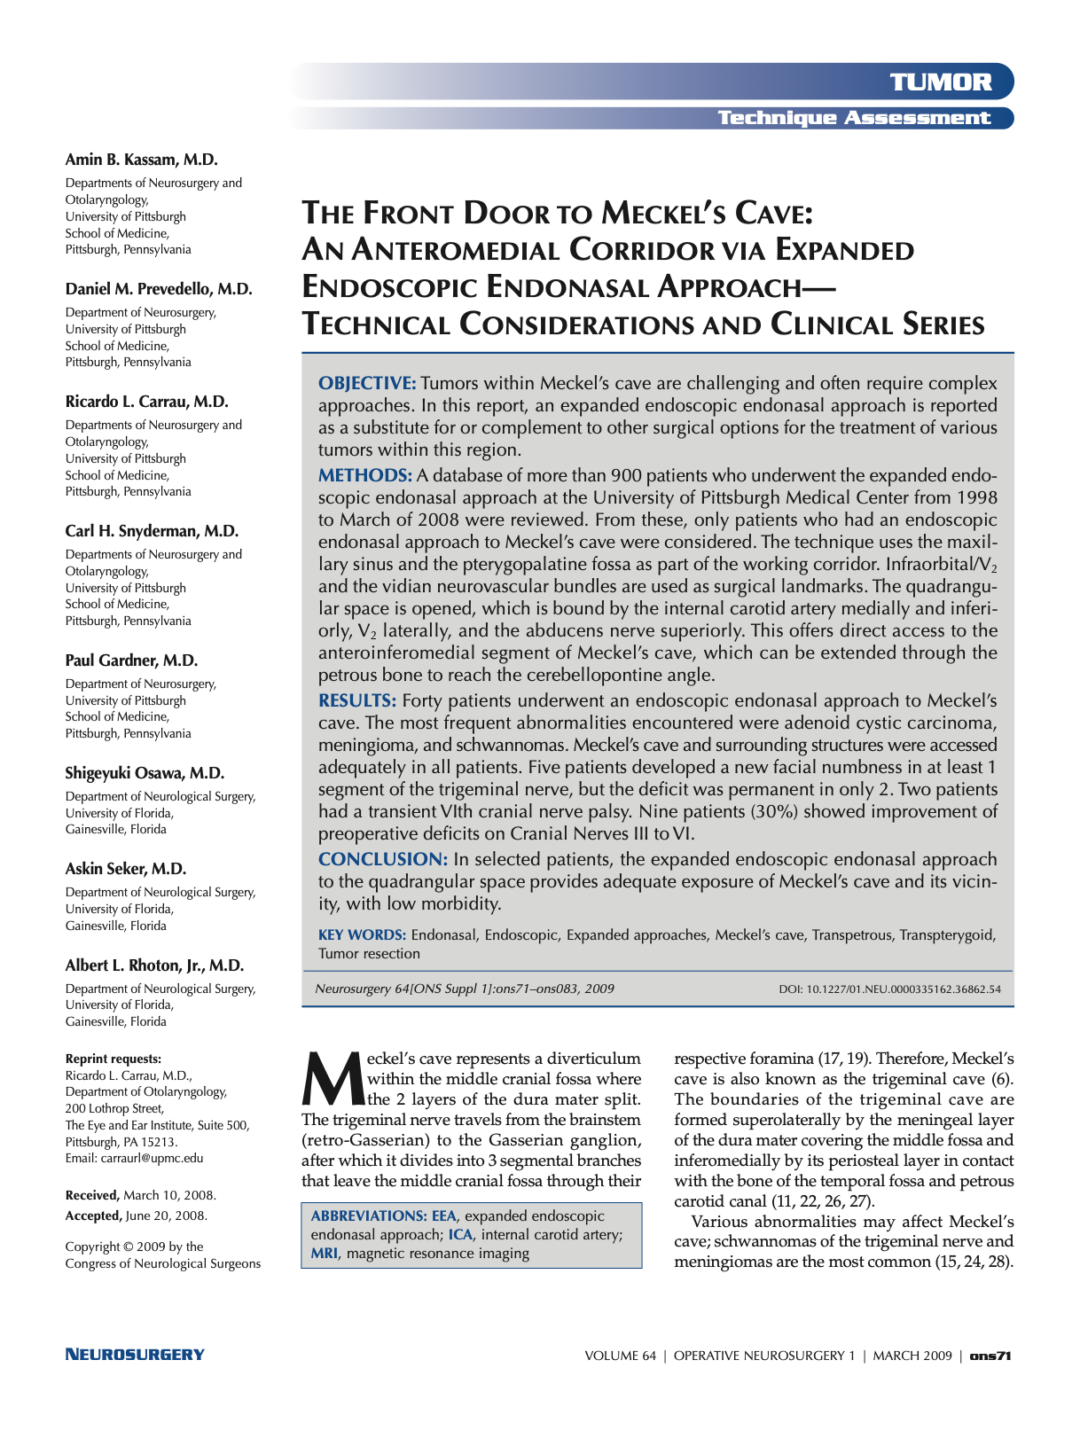 THE FRONT DOOR TO MECKEL'S CAVE AN ANTEROMEDIAL CORRIDOR VIA EXPANDED ENDOSCOPIC ENDONASAL APPROACH— TECHNICAL CONSIDERATIONS AND CLINICAL SERIES